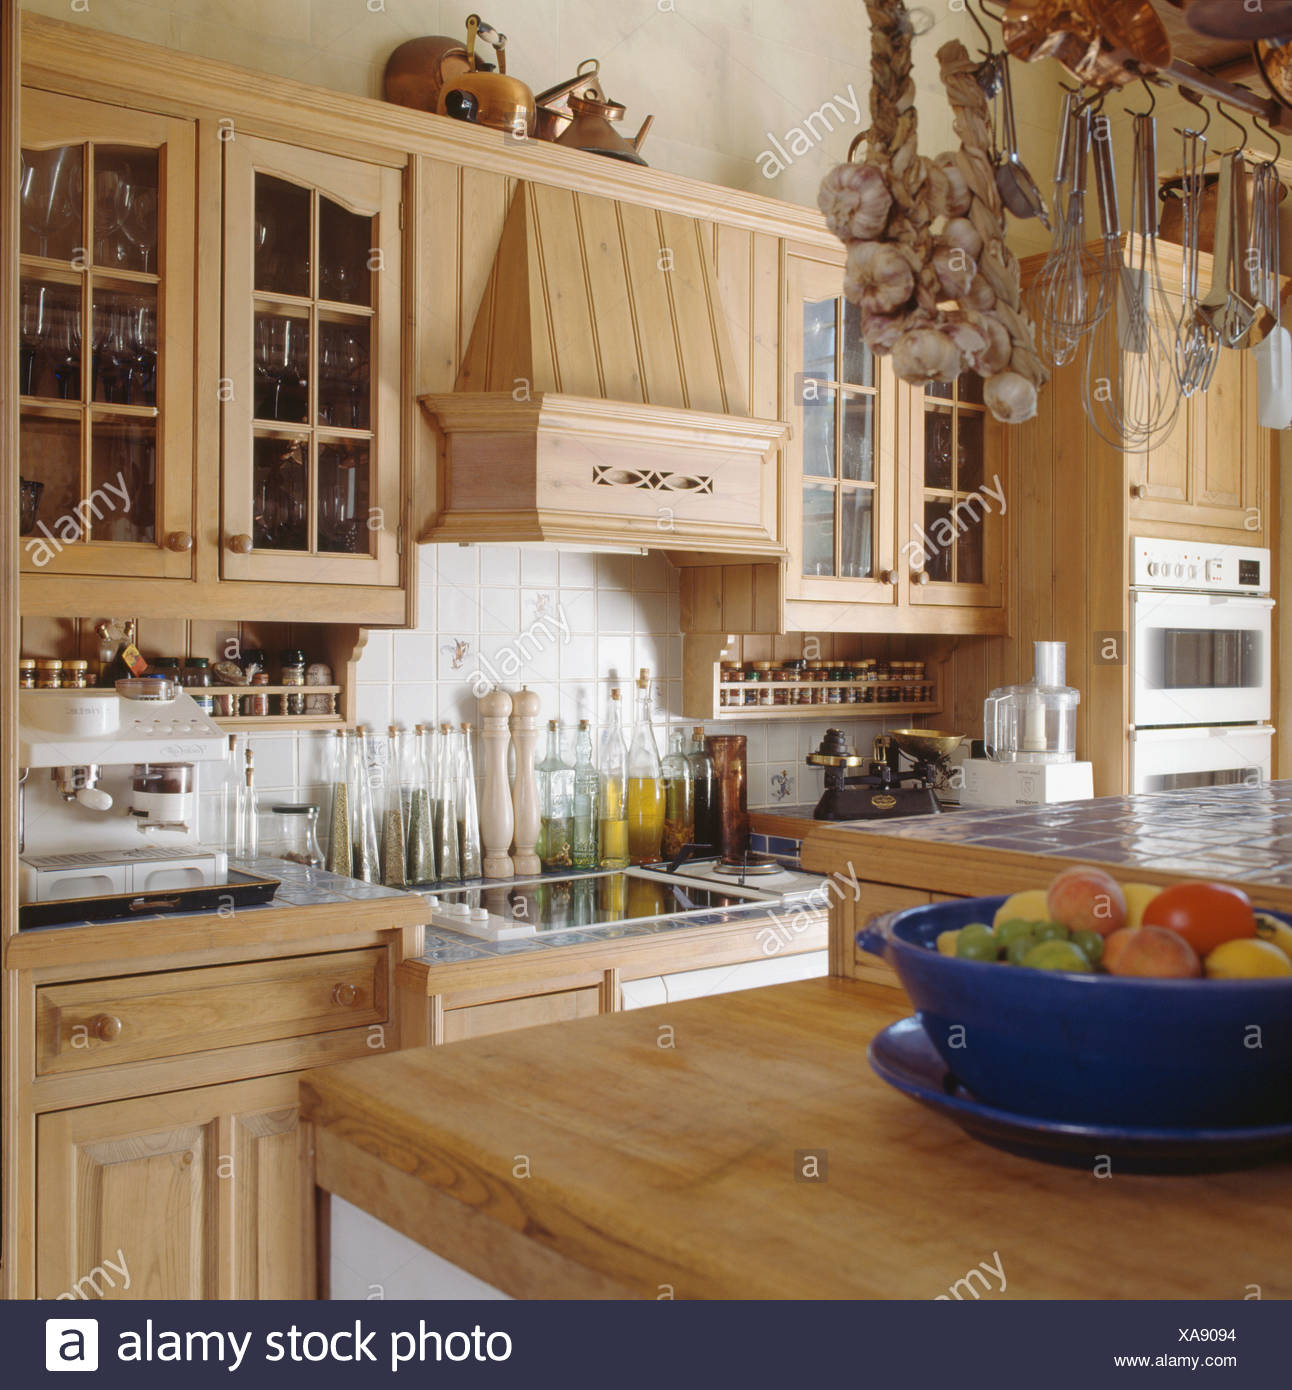 Bowl Of Fruit On Wooden Worktop In Fitted Wooden Kitchen With Row Of